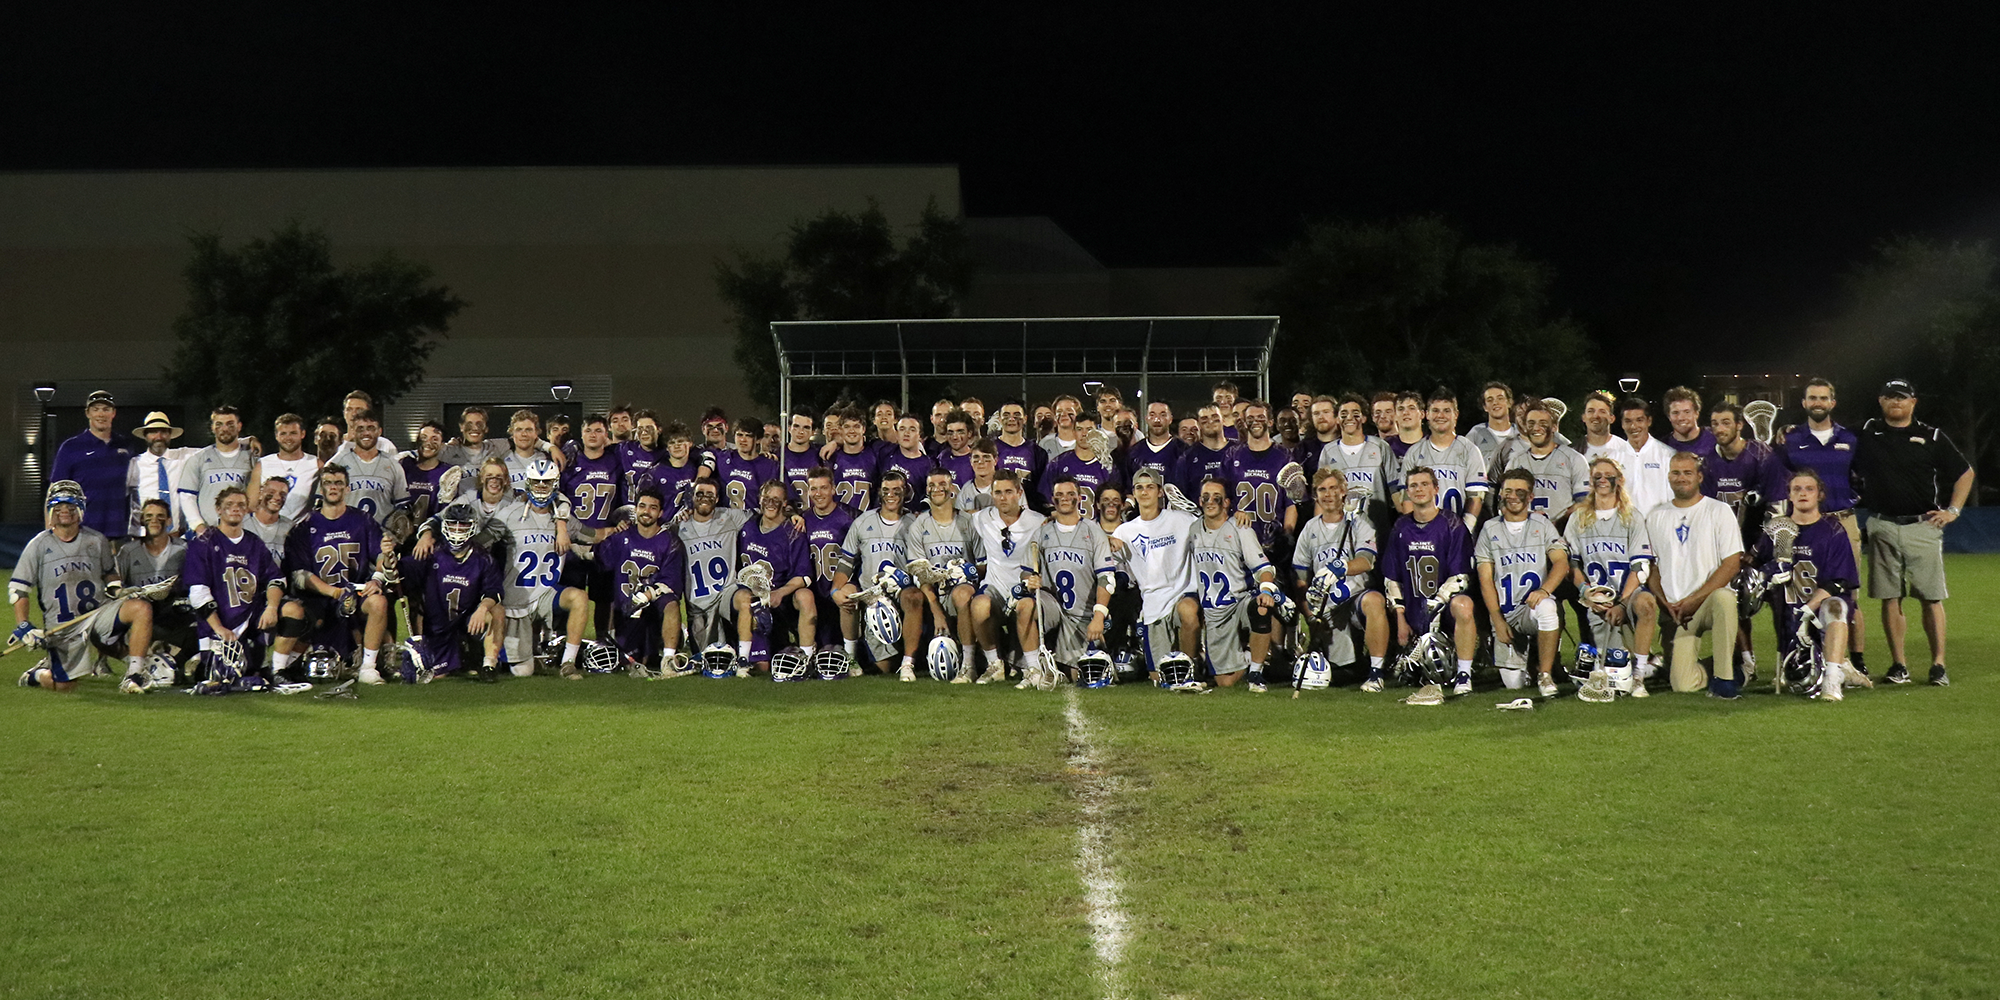 Brous' Dominance Lifts Men's Lacrosse to Victory in Annual One Love Game